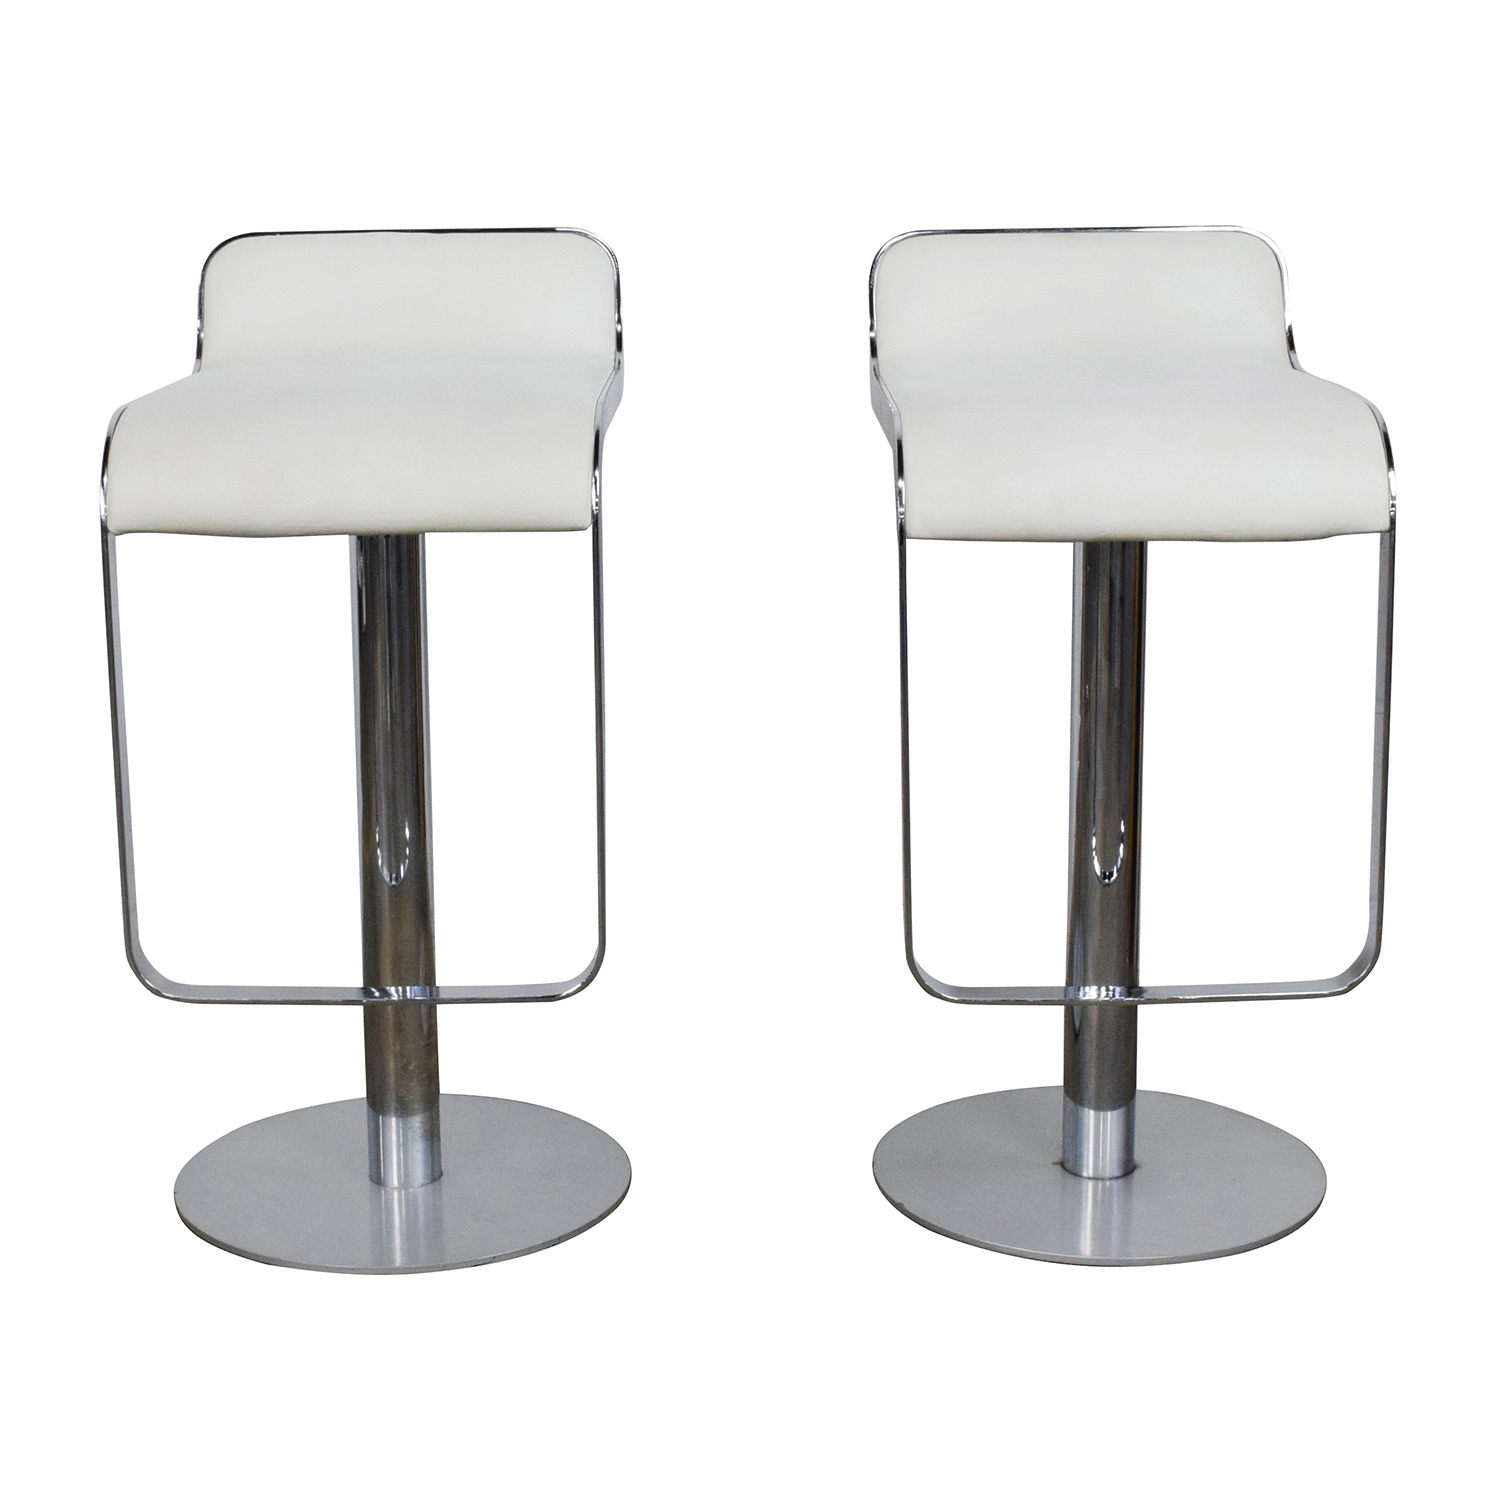 88% OFF   AllModern All Modern White Leather Bar Stools / Chairs